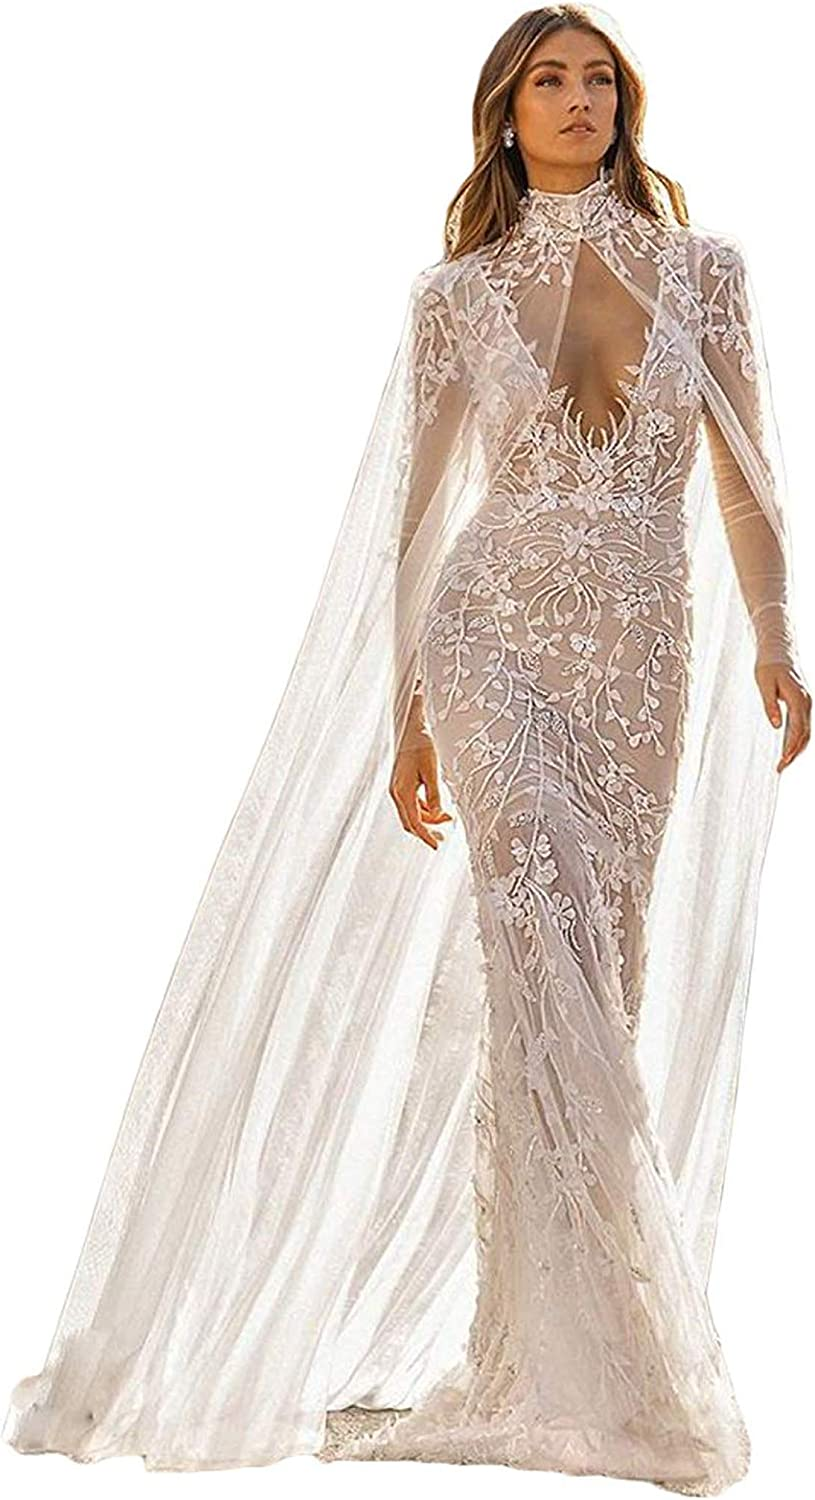 Heigh Neck Wedding Capes Long Lace Bride Wraps Cloaks Cathedral Length